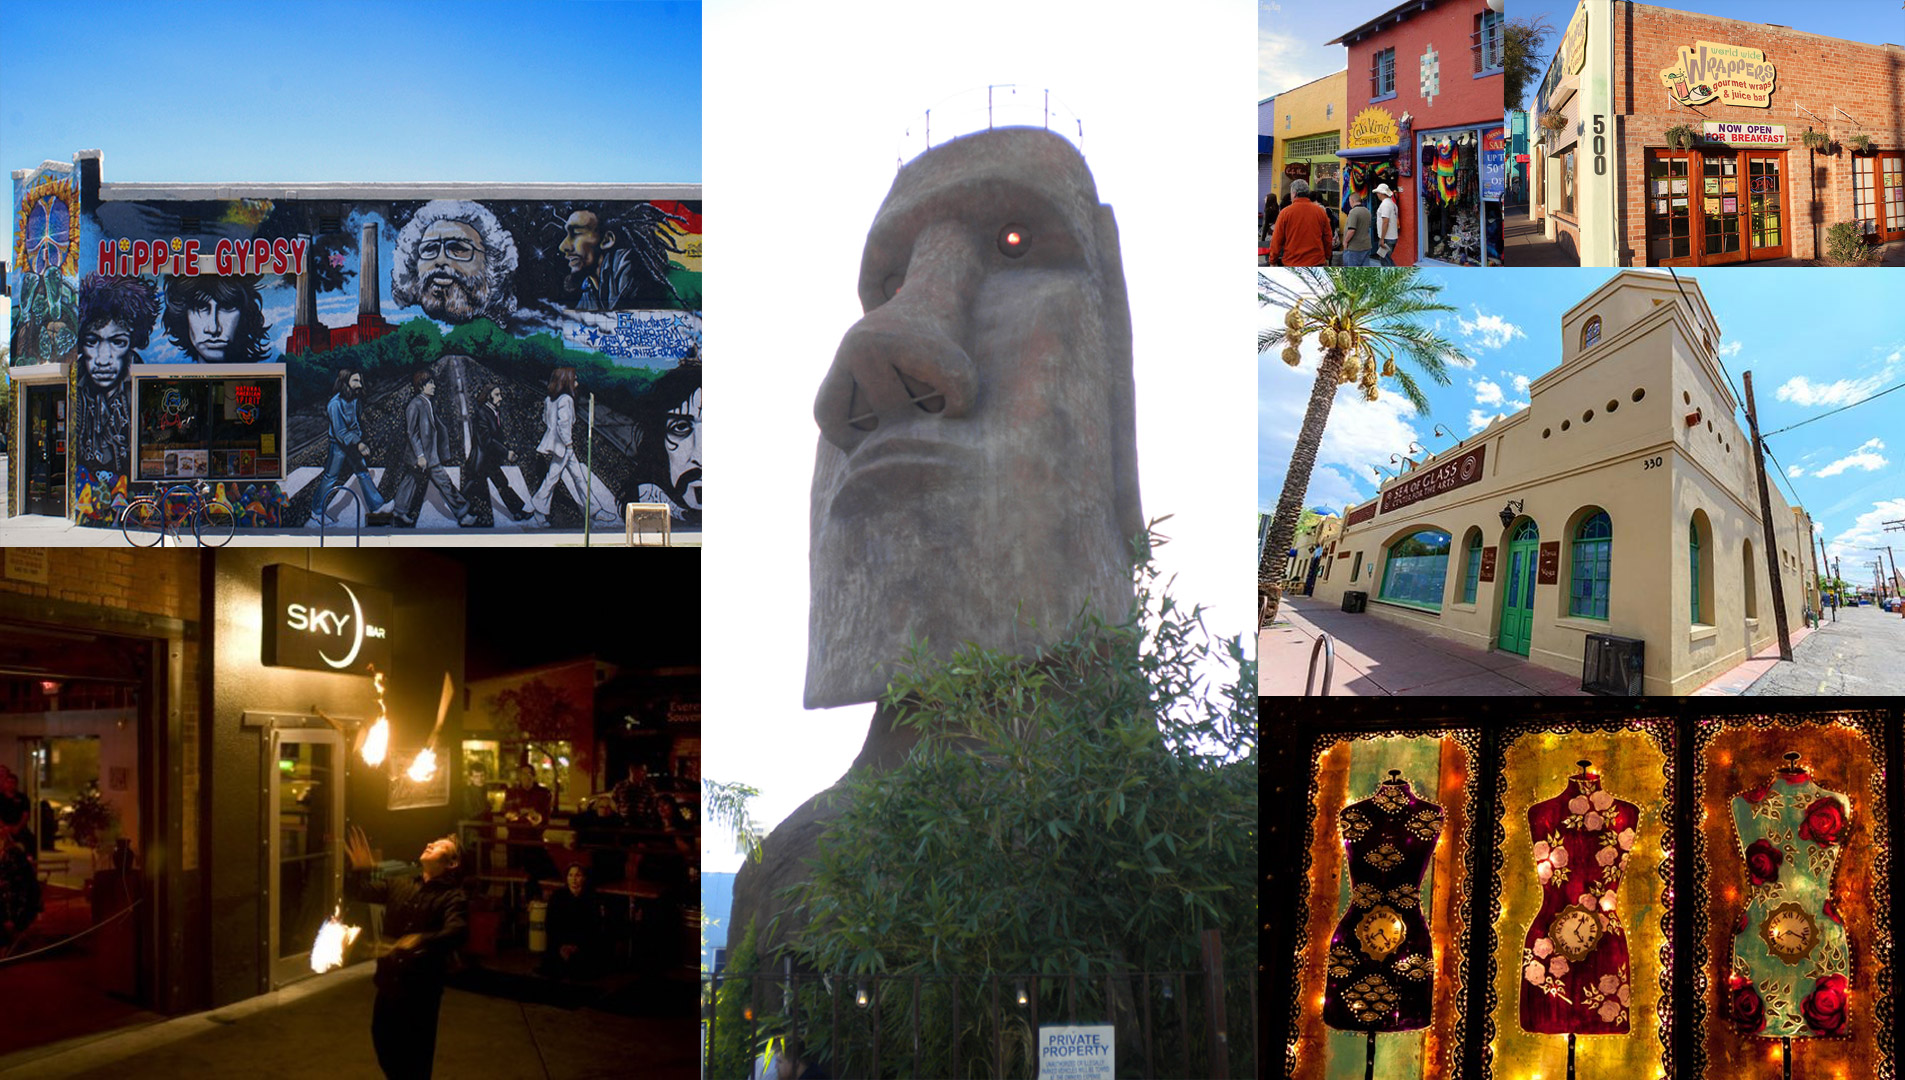 A collection of the sights from historic Fourth Avenue in Tucson, Arizona.